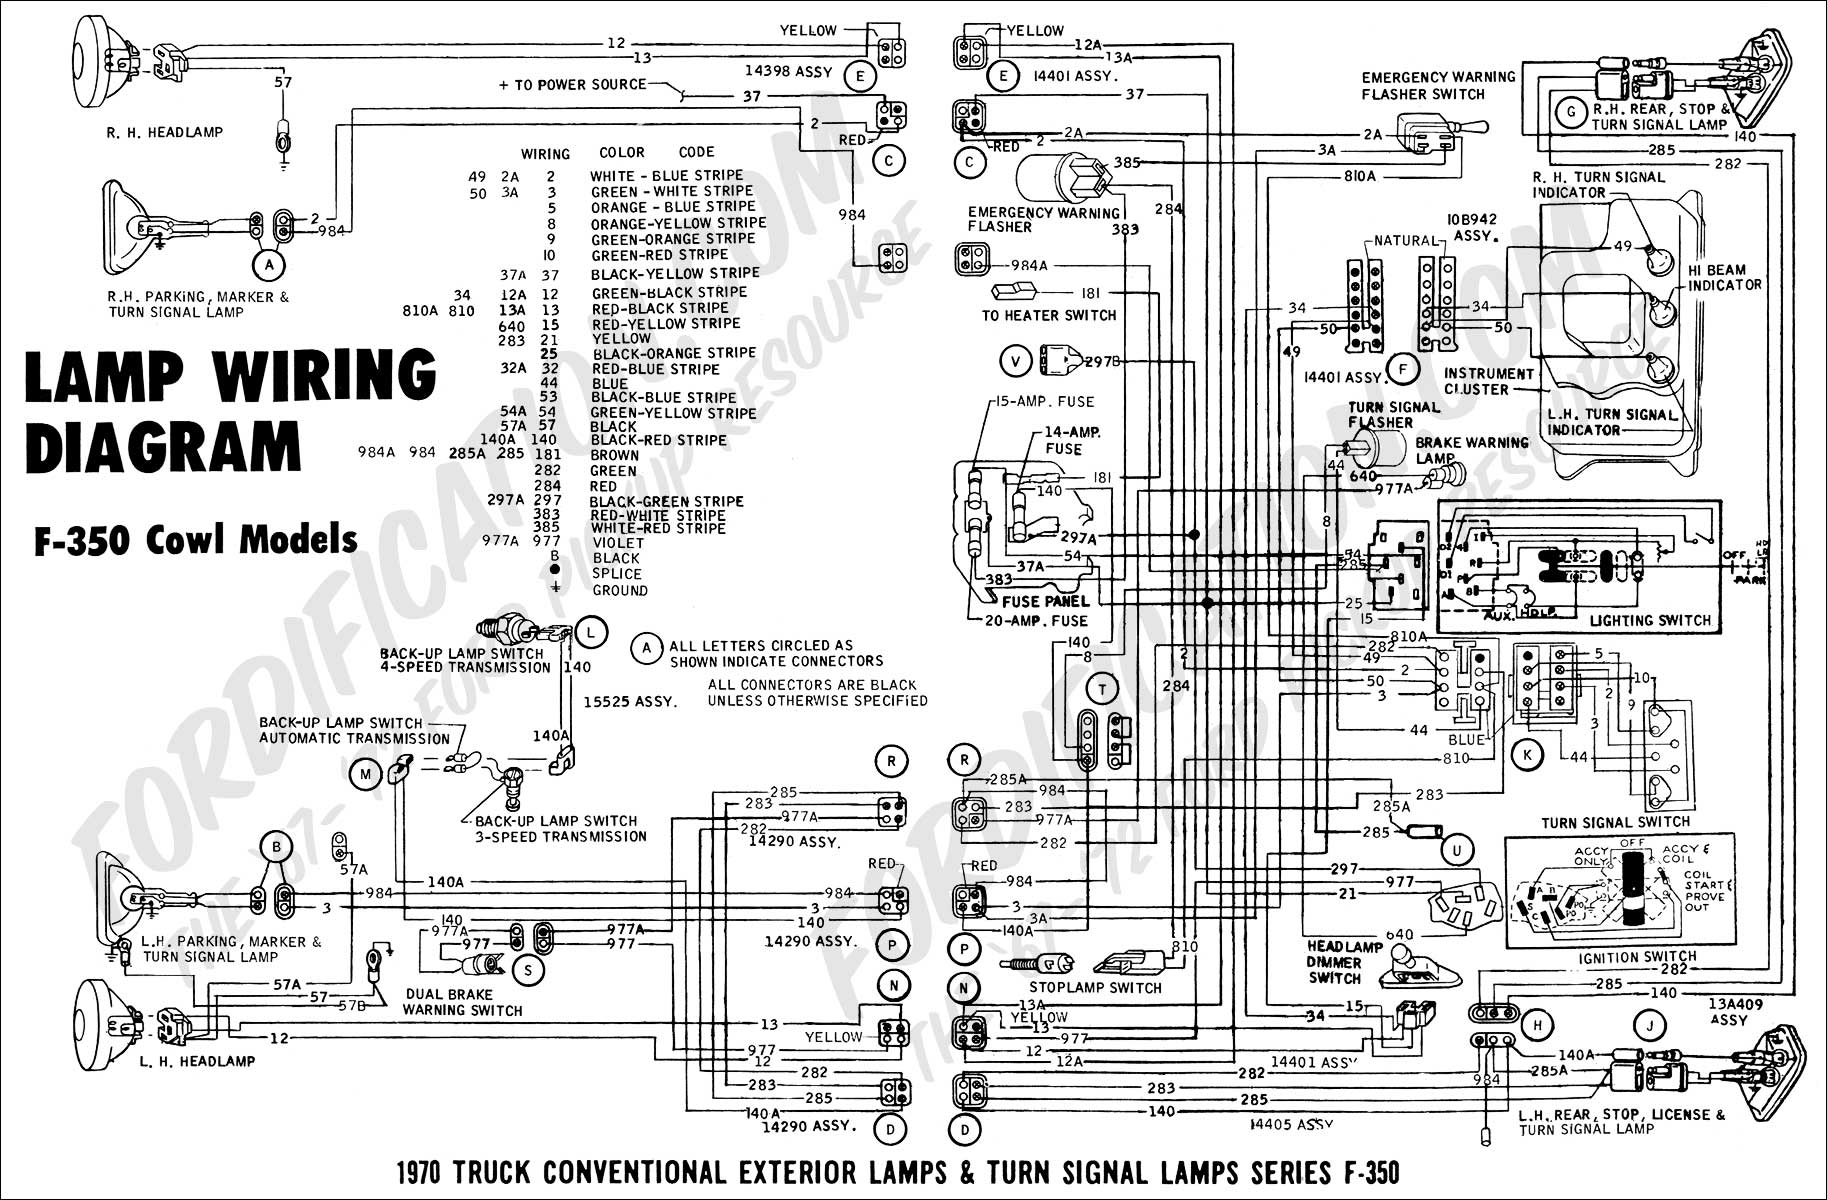 2004 ford e350 wiring diagram lesser omentum 2006 all data 1989 fuse panel